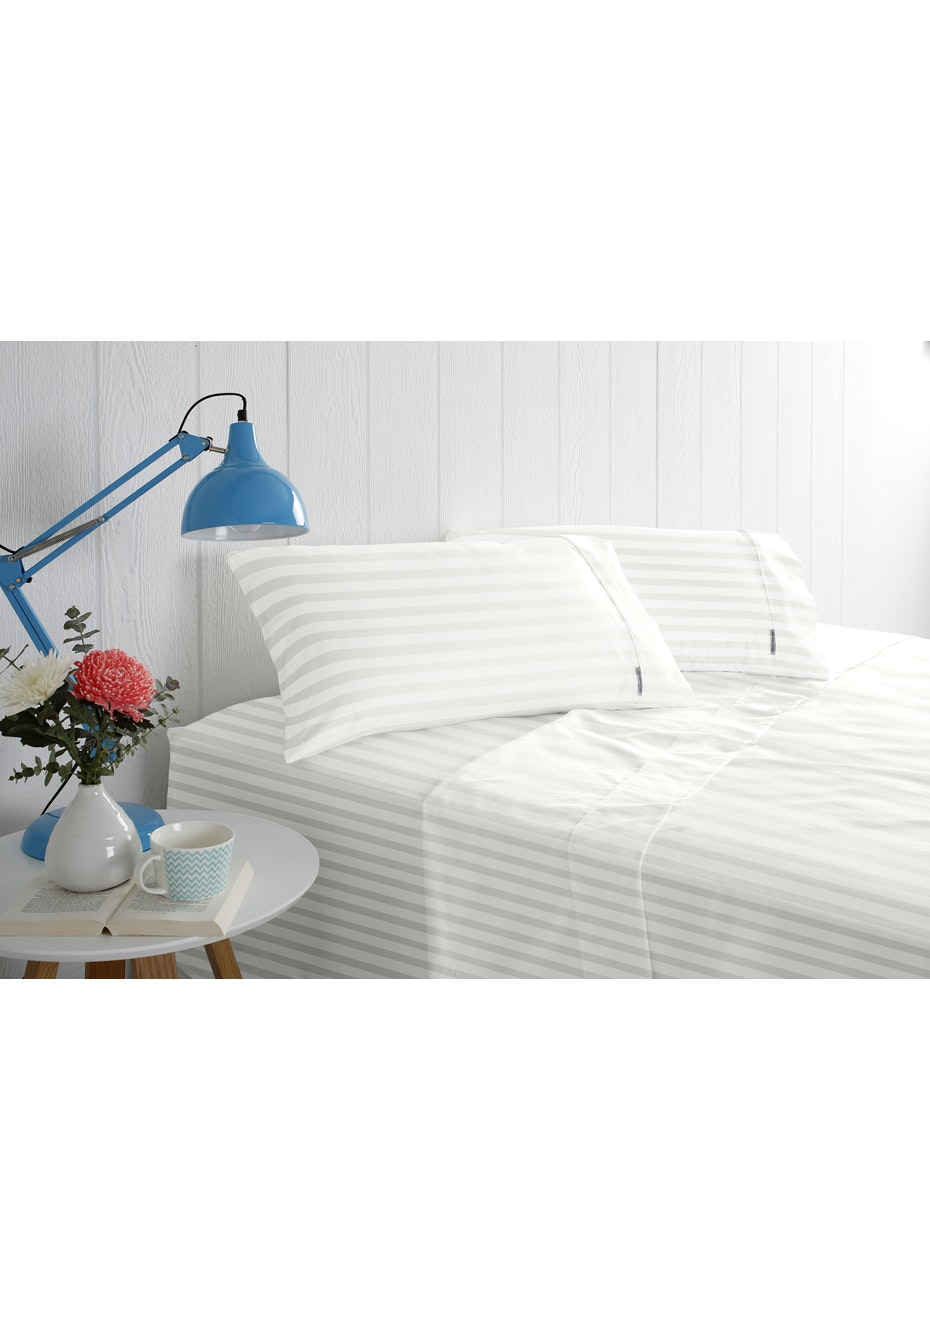 1000 Thread Count - Cotton Rich Solid Sateen -White - Queen Bed